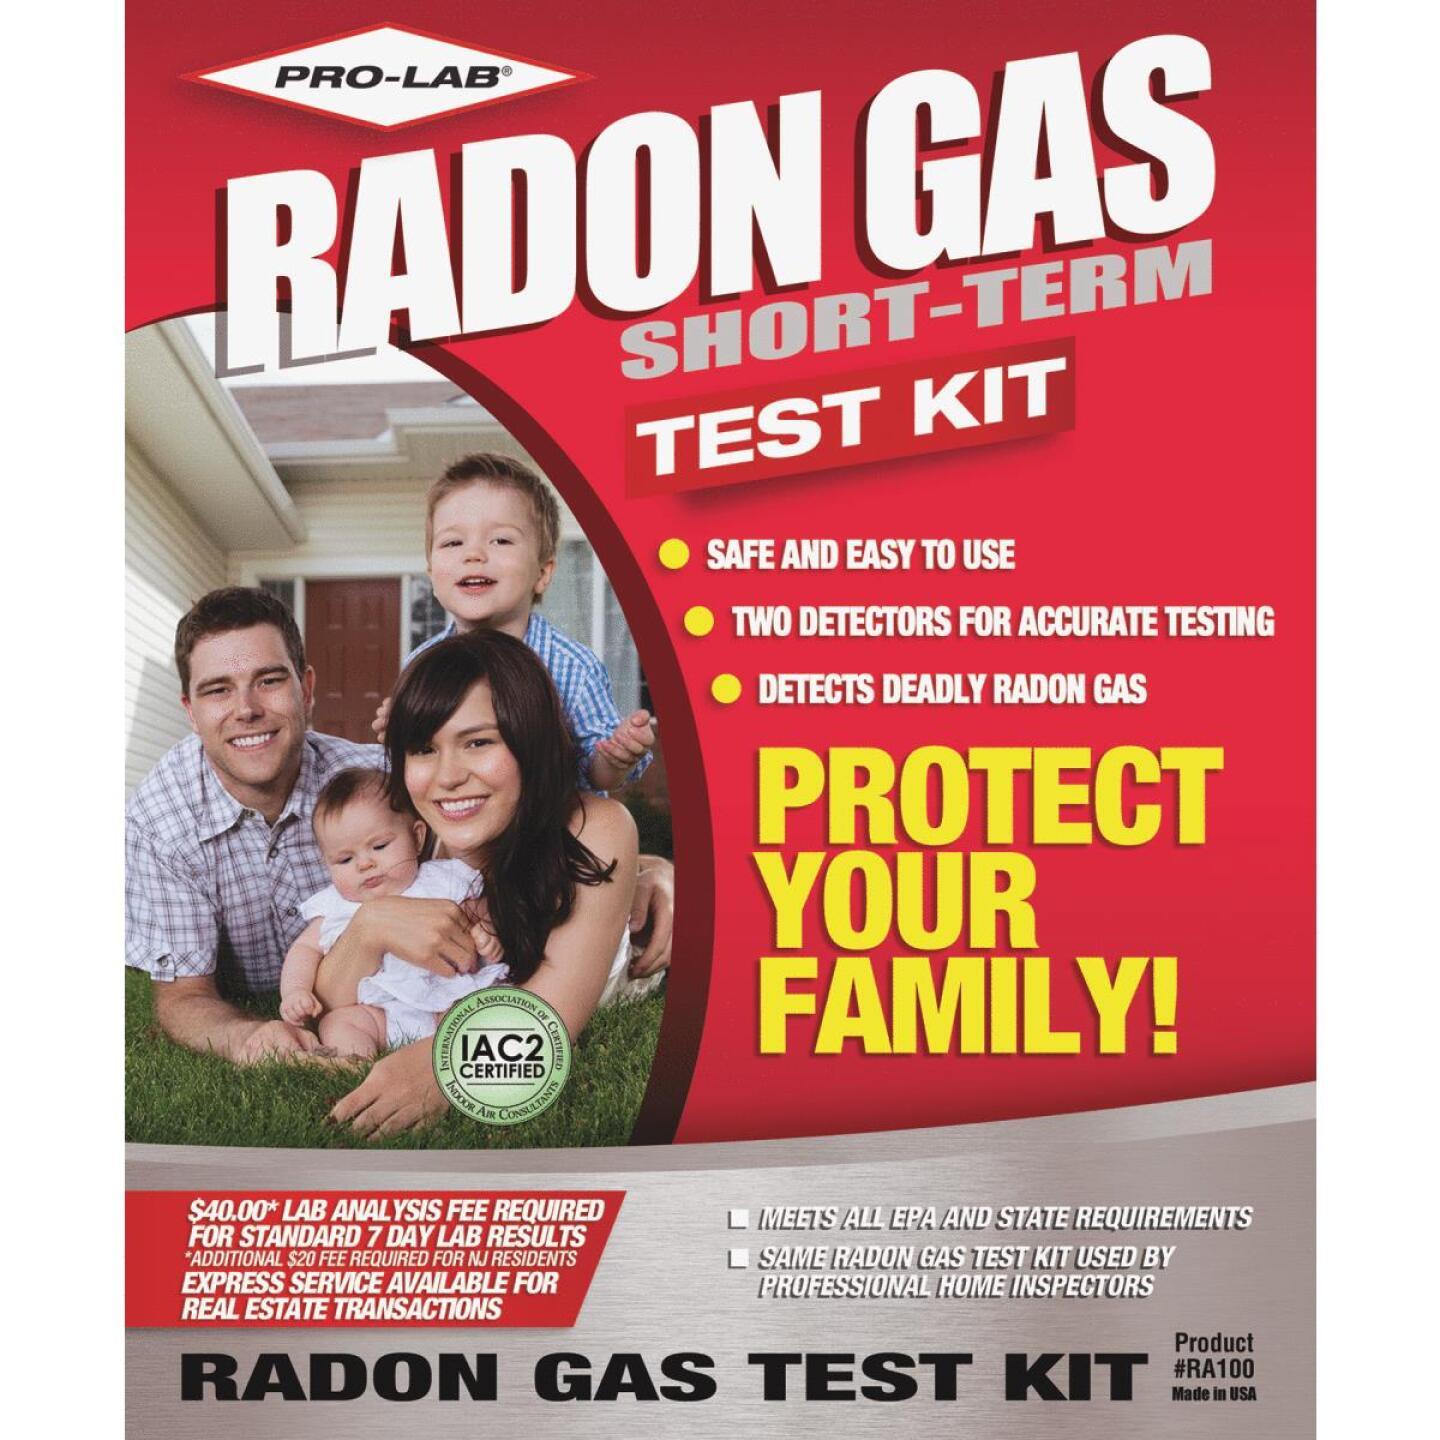 Pro Lab Radon Test Kit Image 1